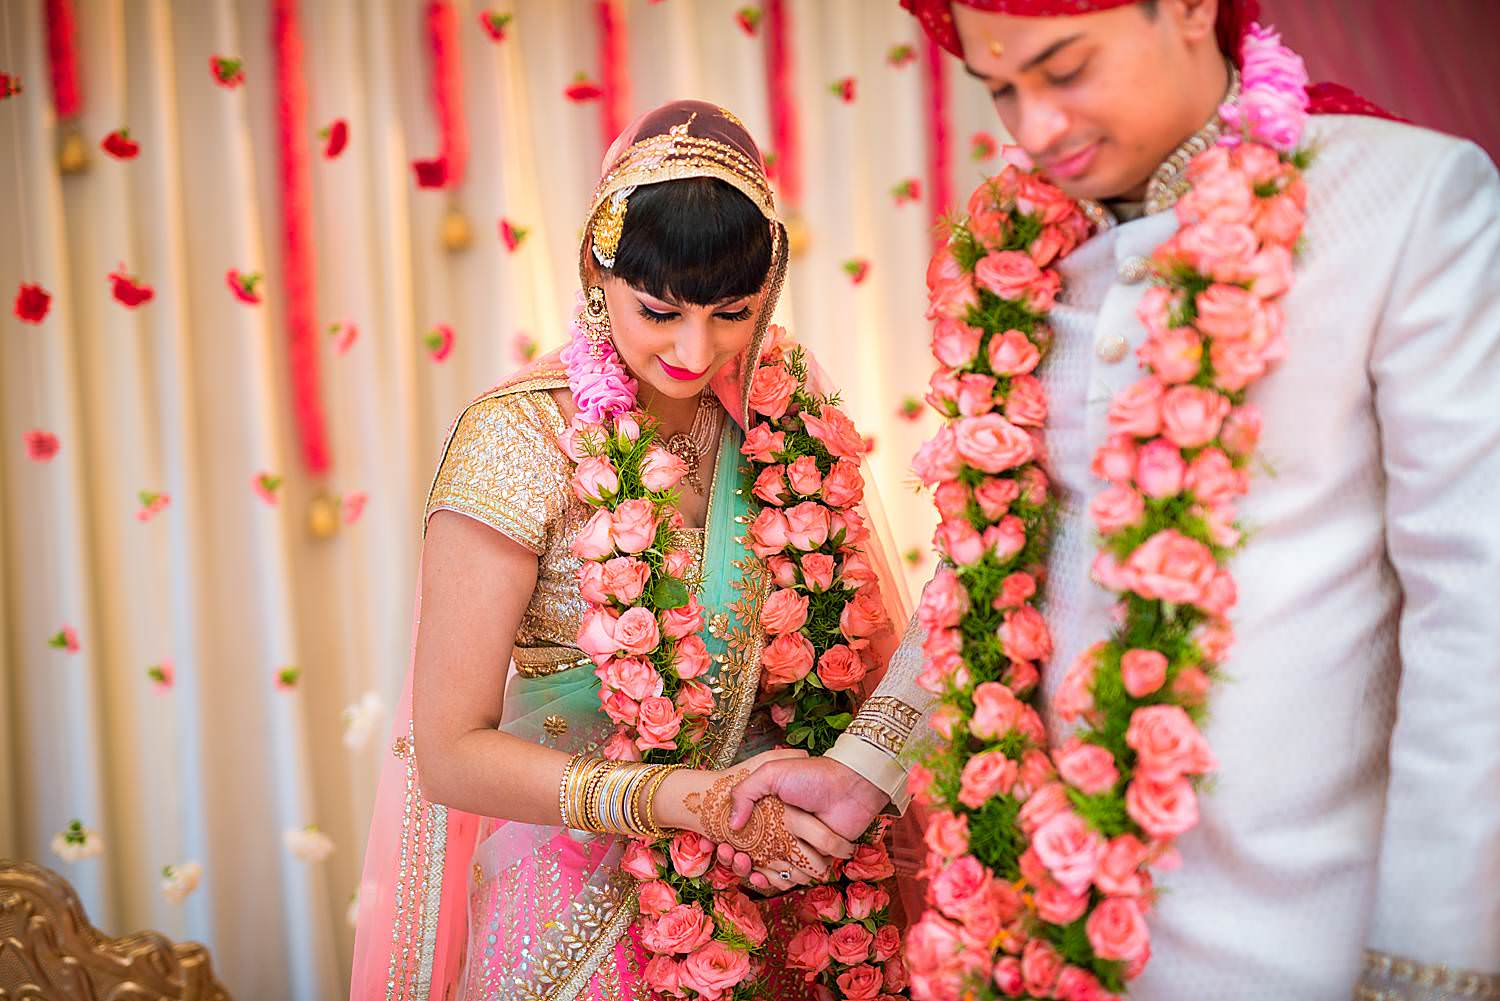 Ritu-Conan-Nikhil-Shastri-Wedding-Photography-38.jpg